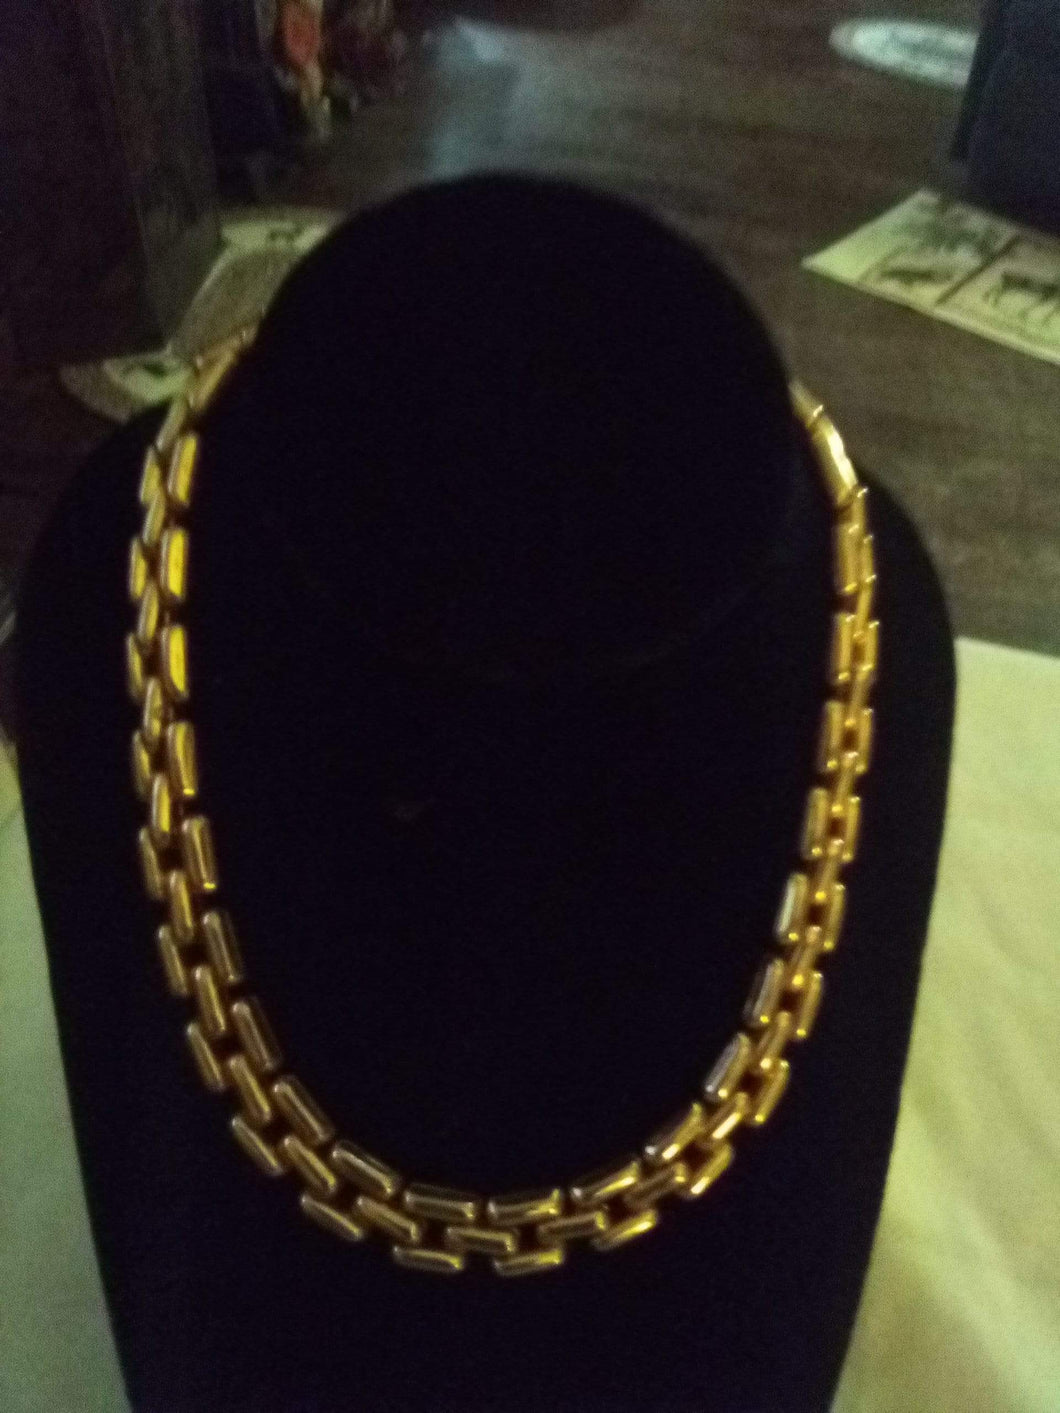 Cute gold tone necklace - B&P'sringsnthings